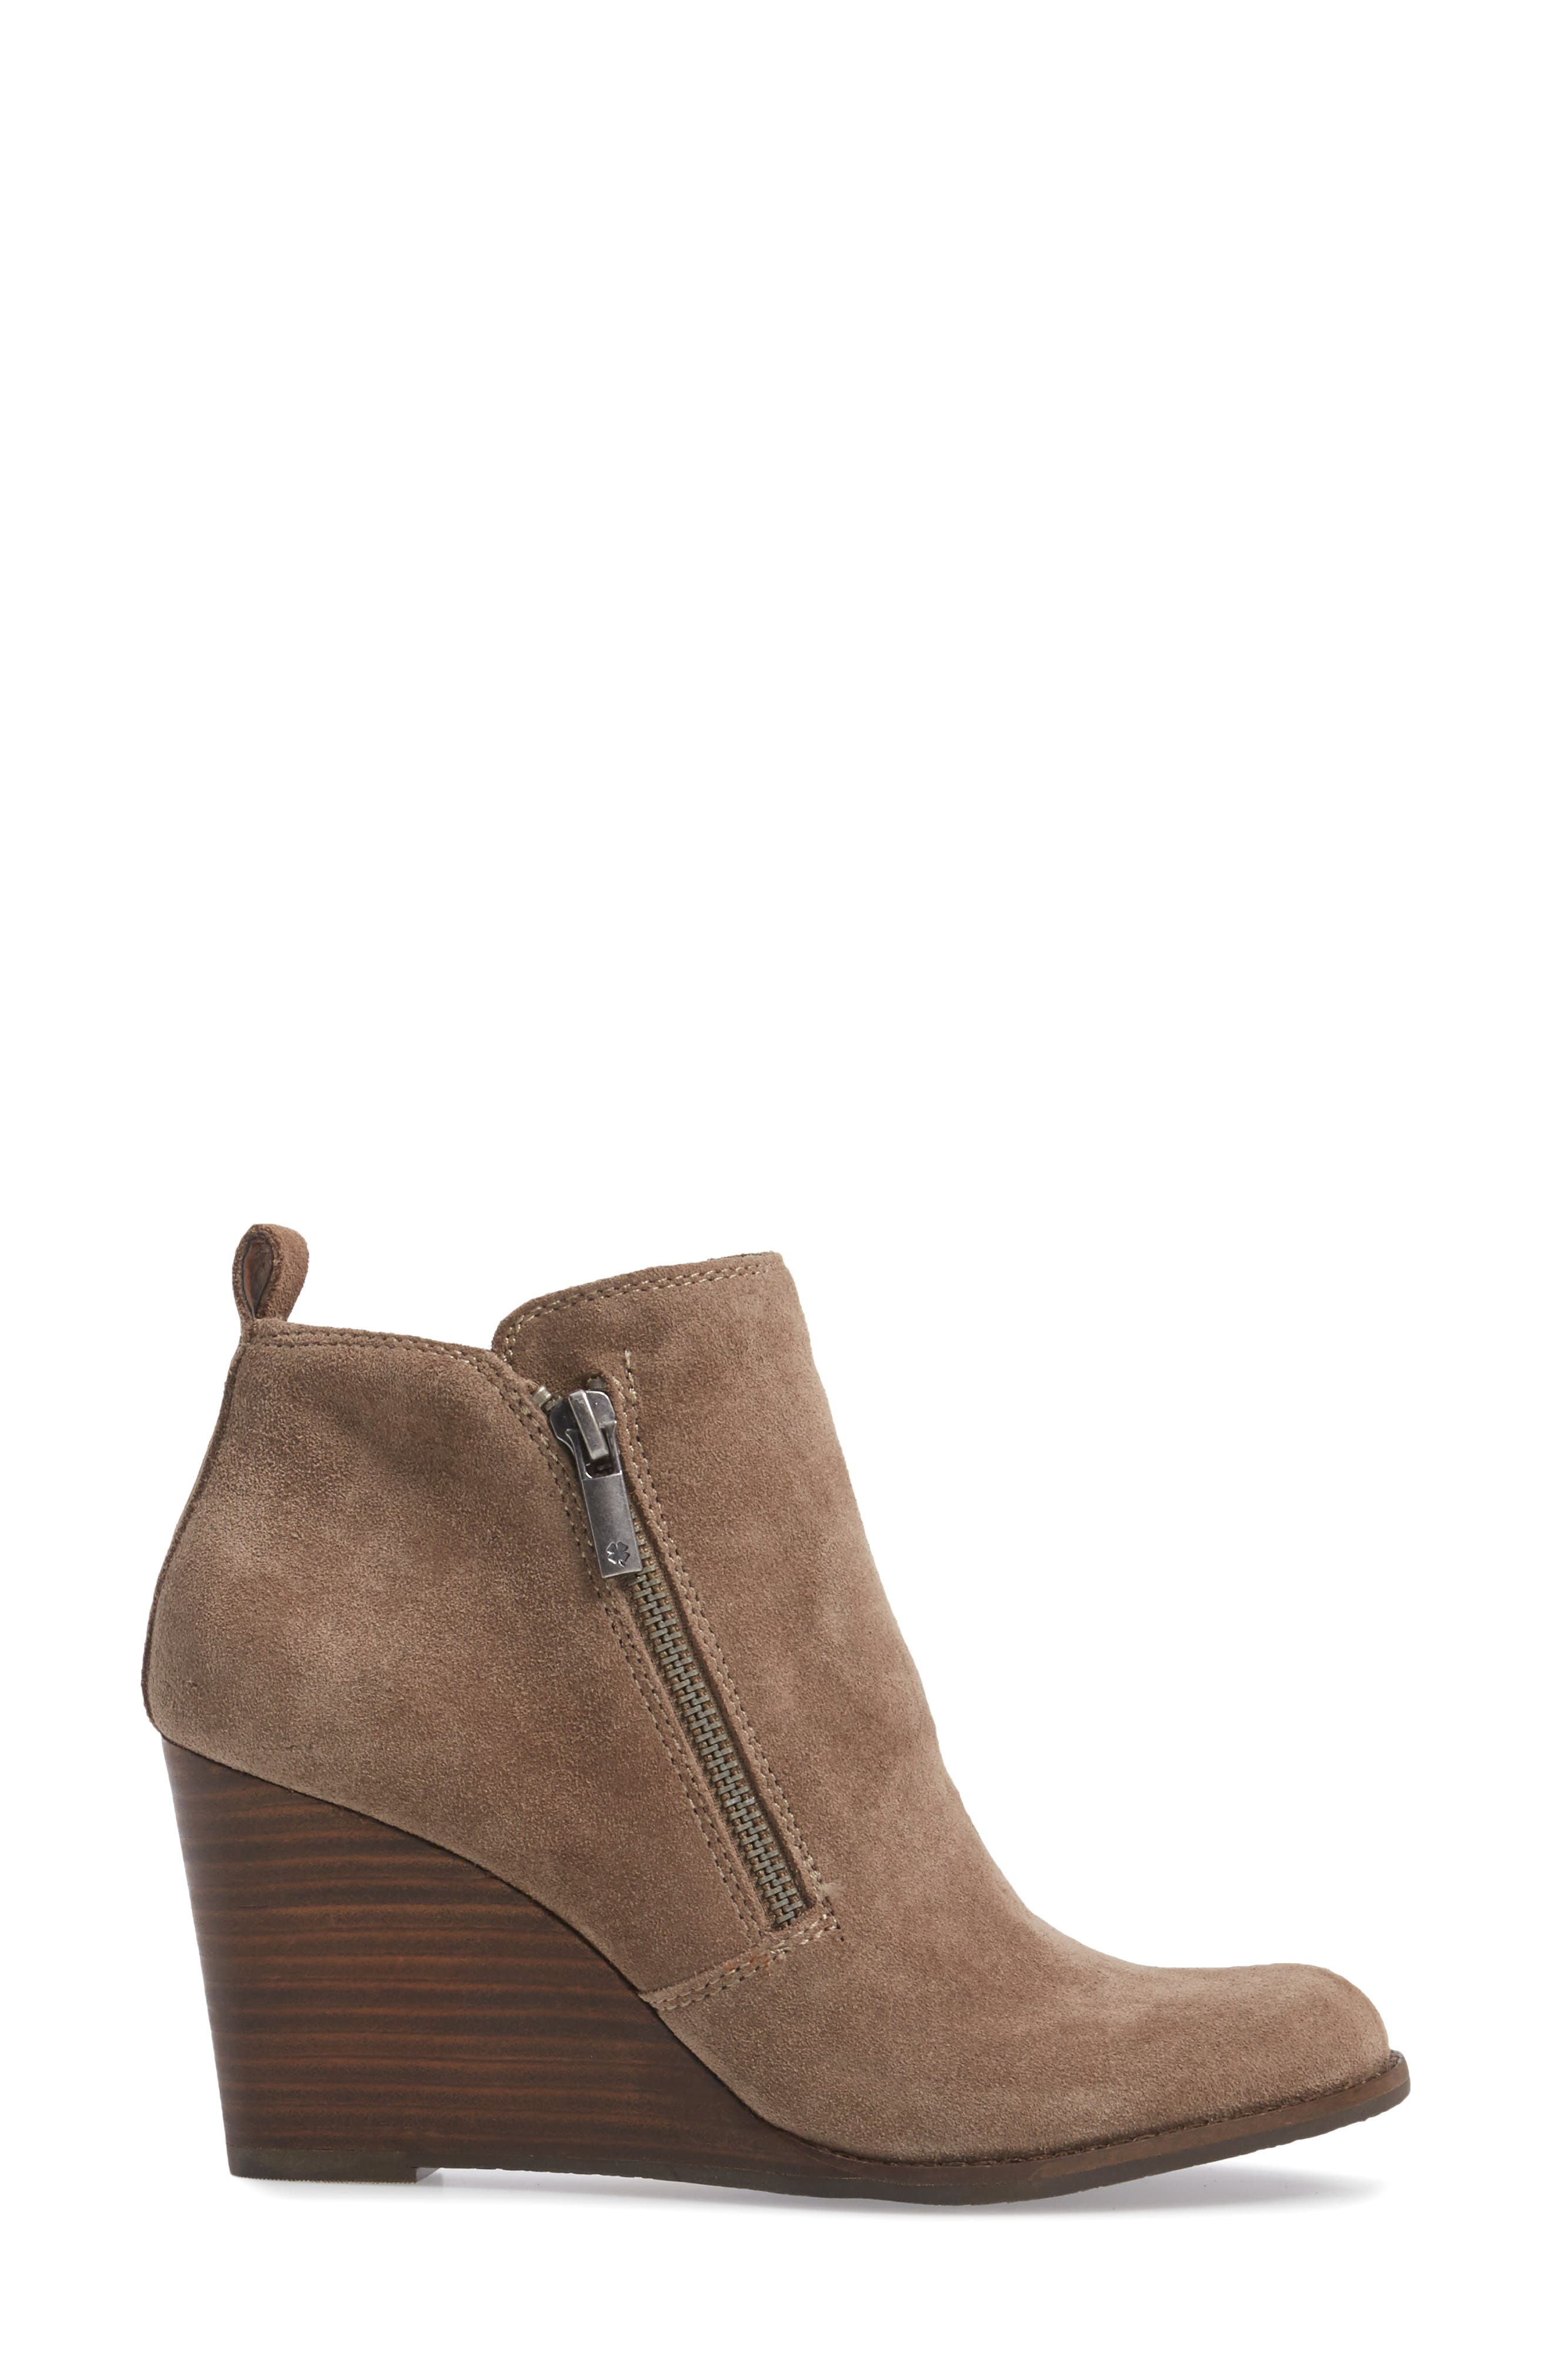 Yesterr Wedge Bootie,                             Alternate thumbnail 3, color,                             Brindle Suede